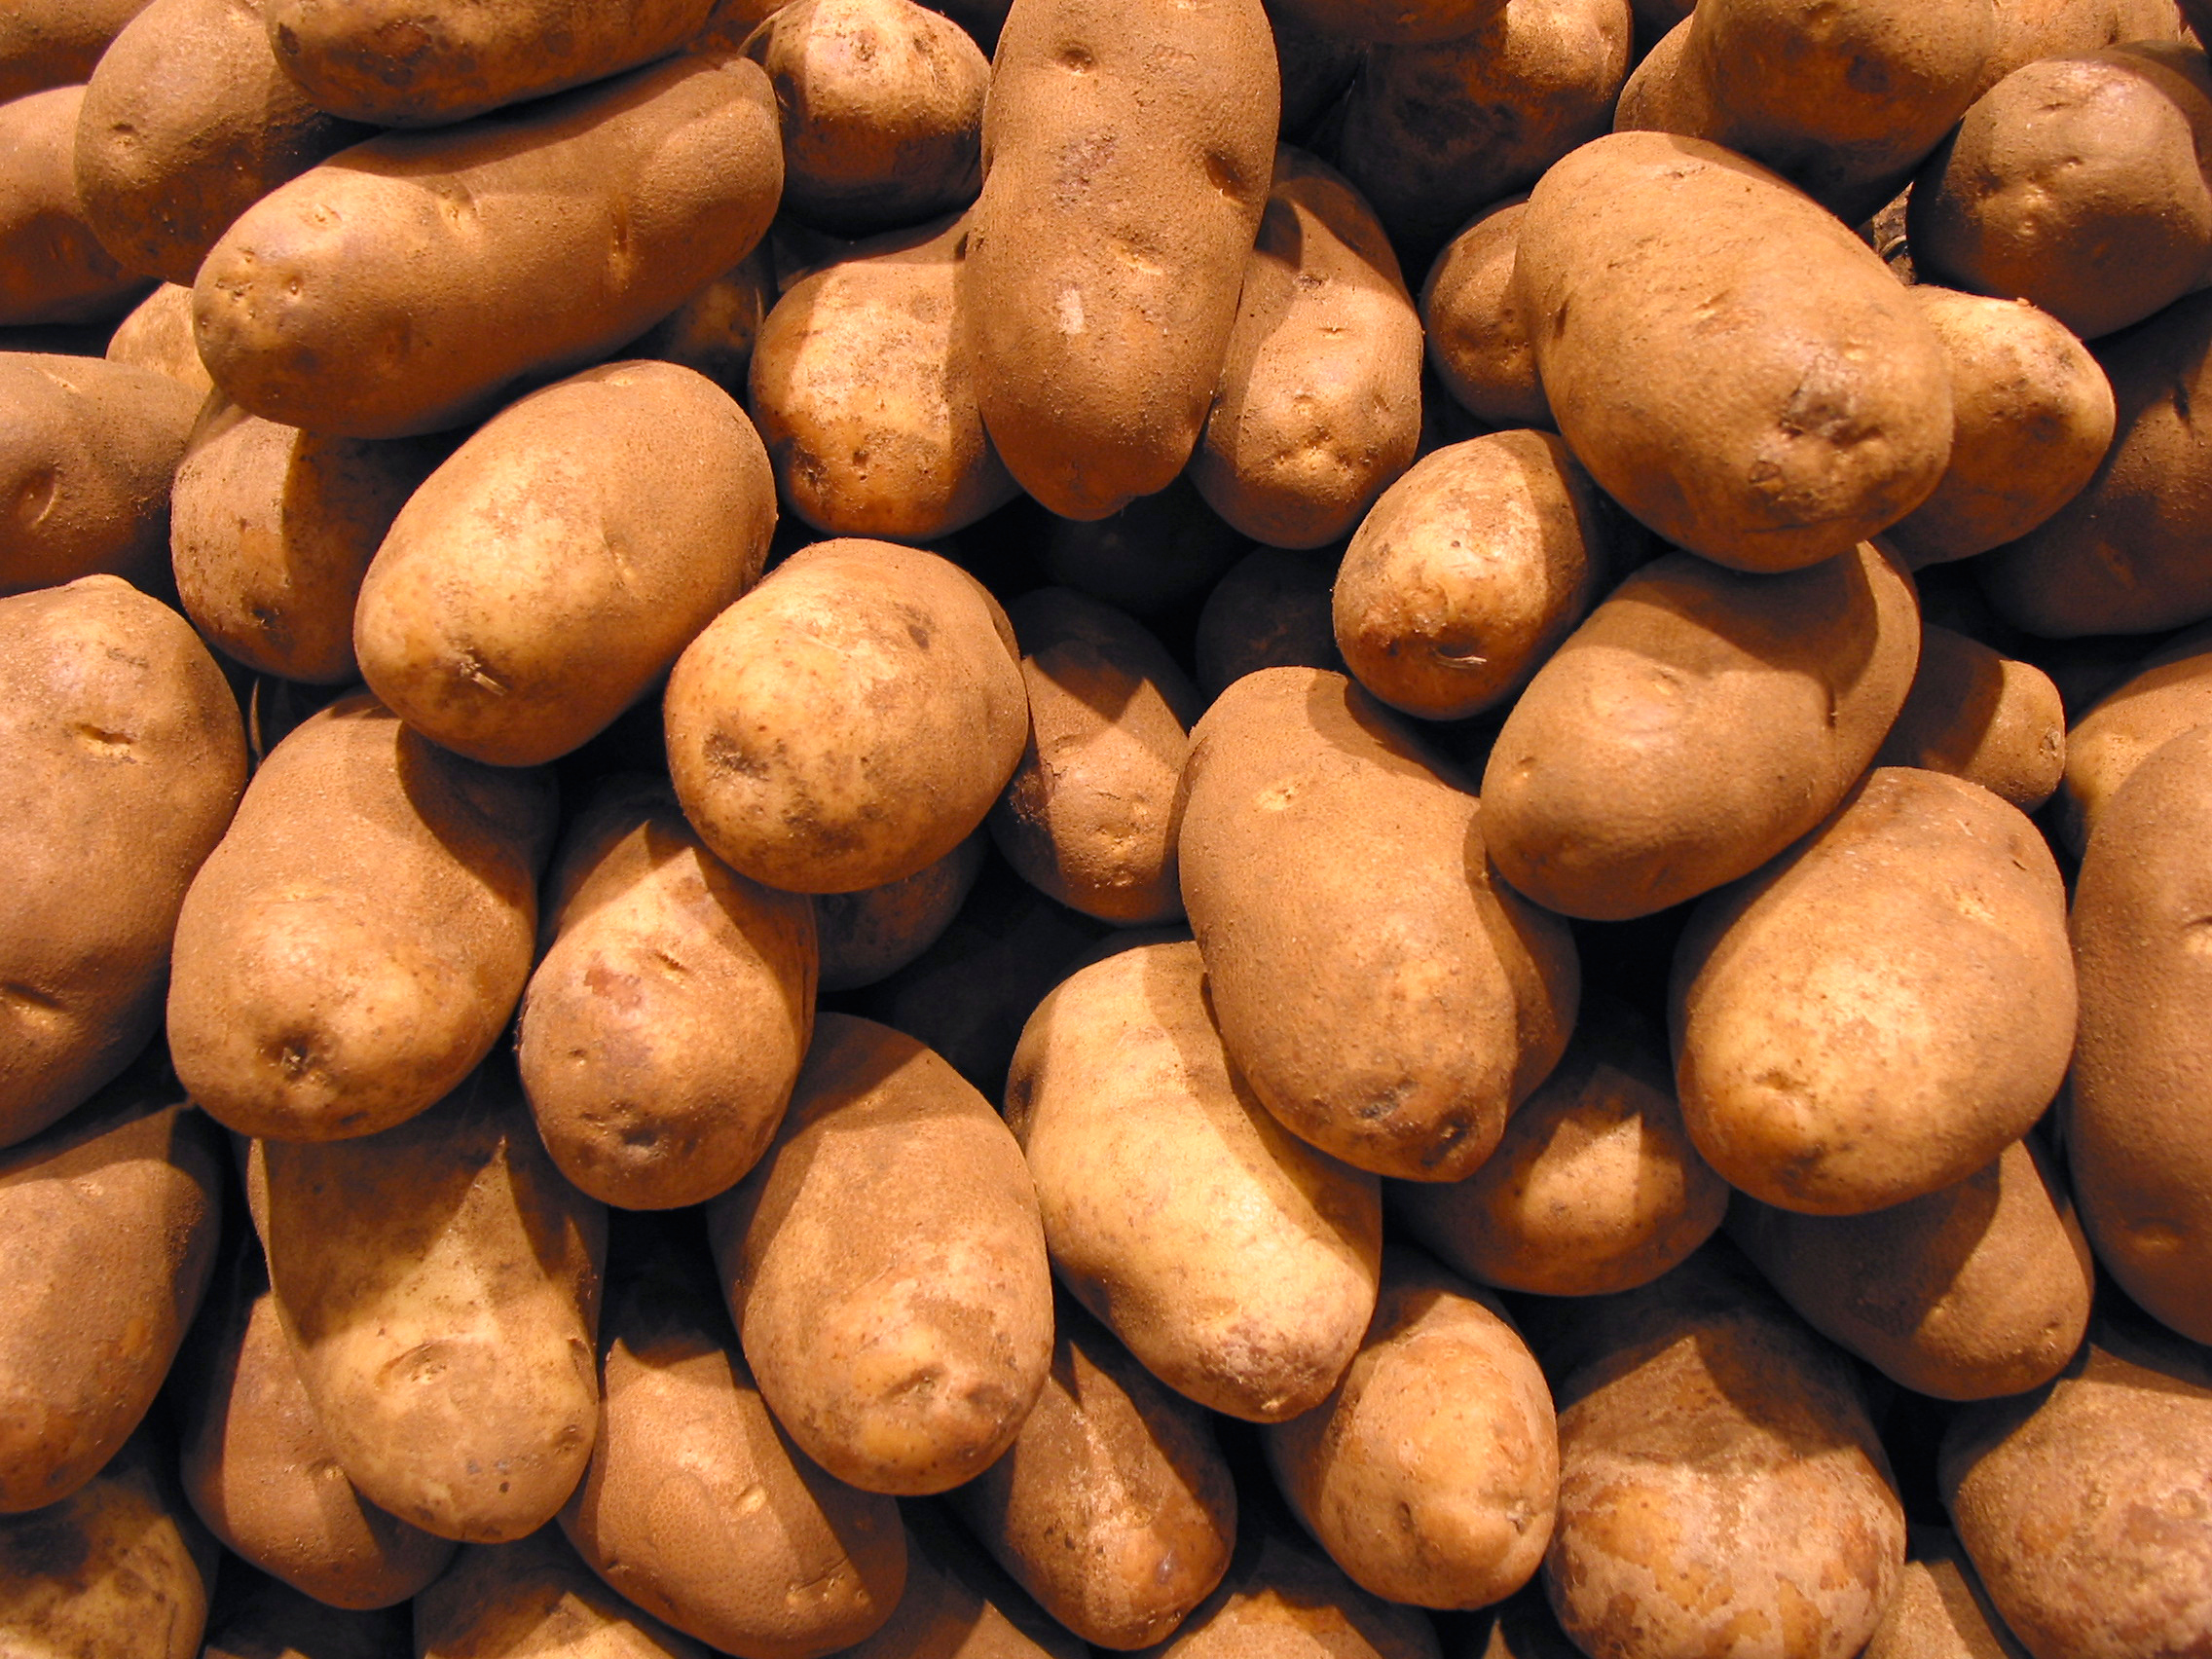 Potato, FREE Stock Photo, Image, Picture: Potatoes, Tubers ...